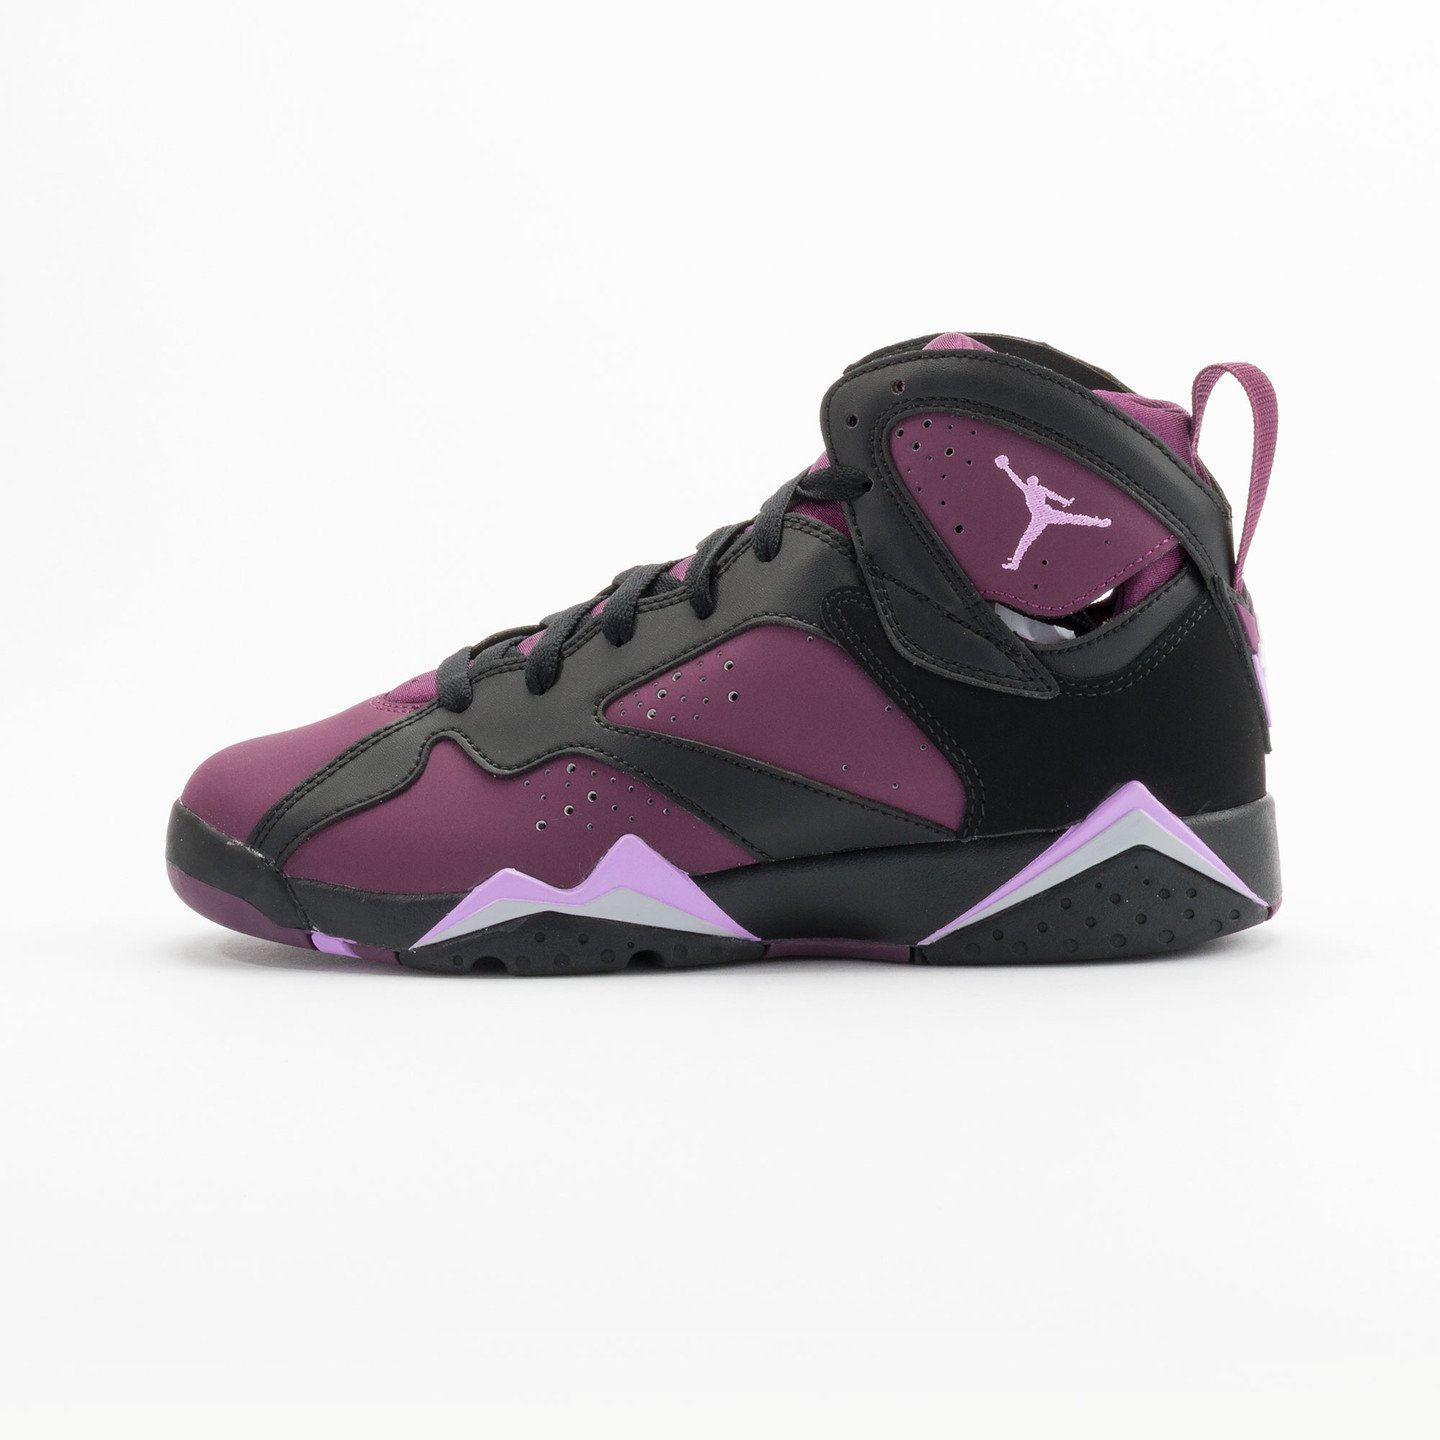 Jordan Air Jordan 7 Retro GG Mulberry / Fuchsia / Black 442960-009-36